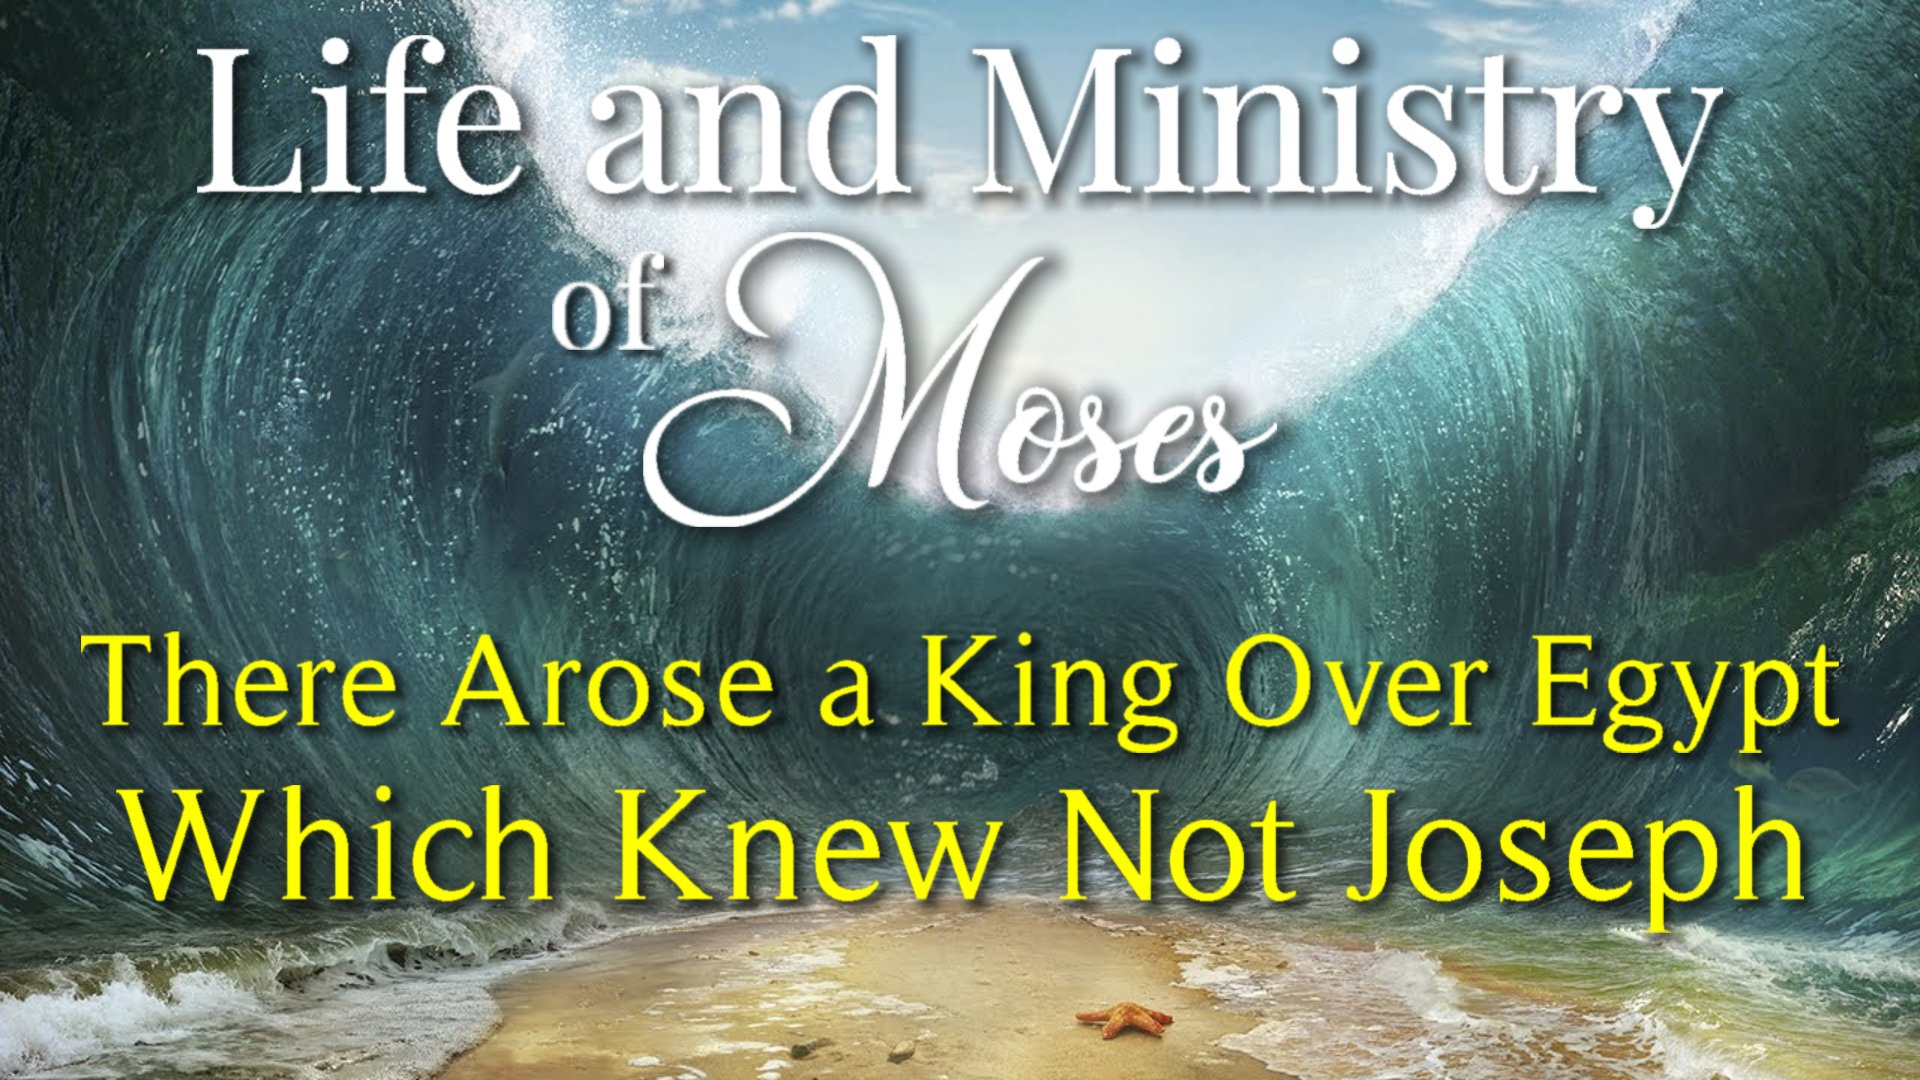 01 There Arose a King Over Egypt Which Knew Not Joseph